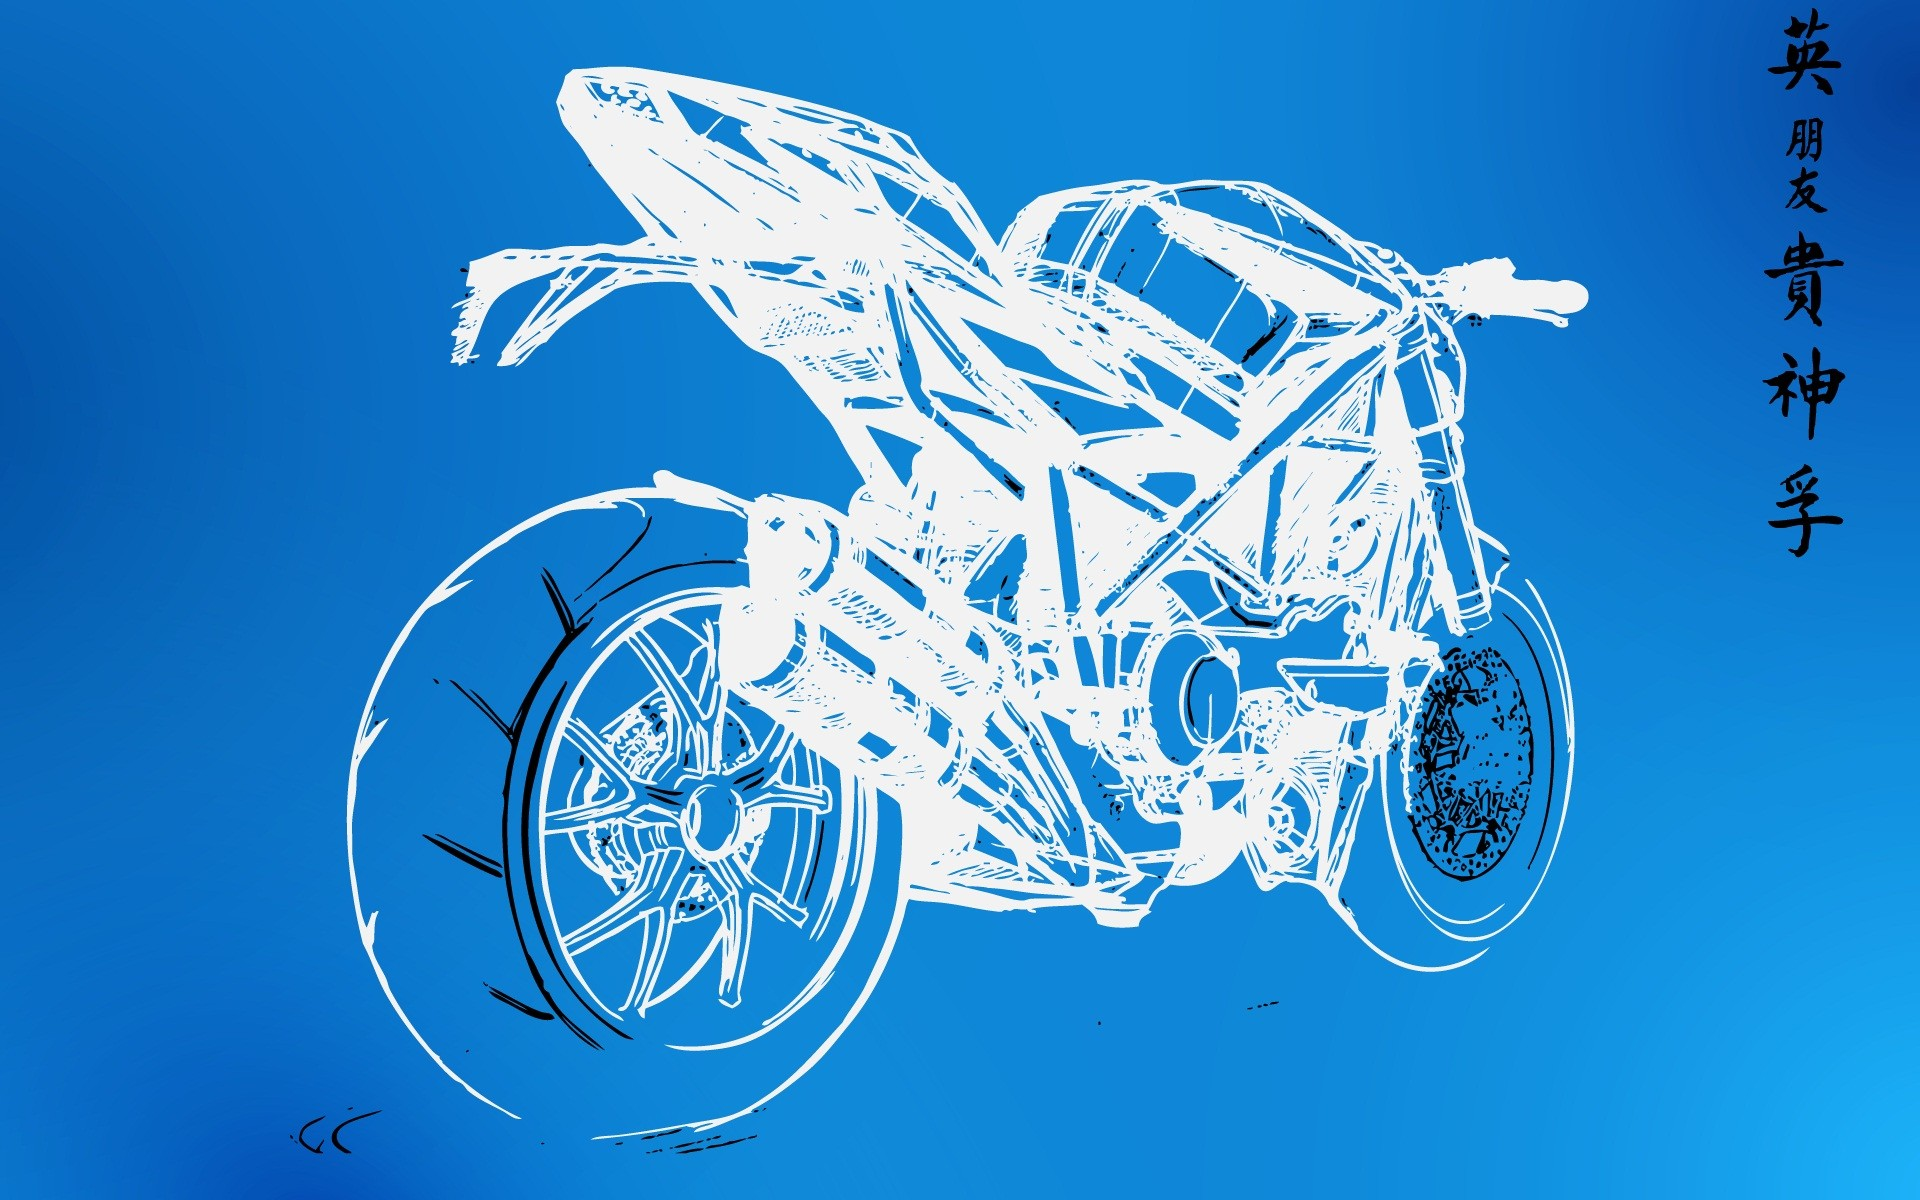 wall sketches motorbikes graphic blueprint